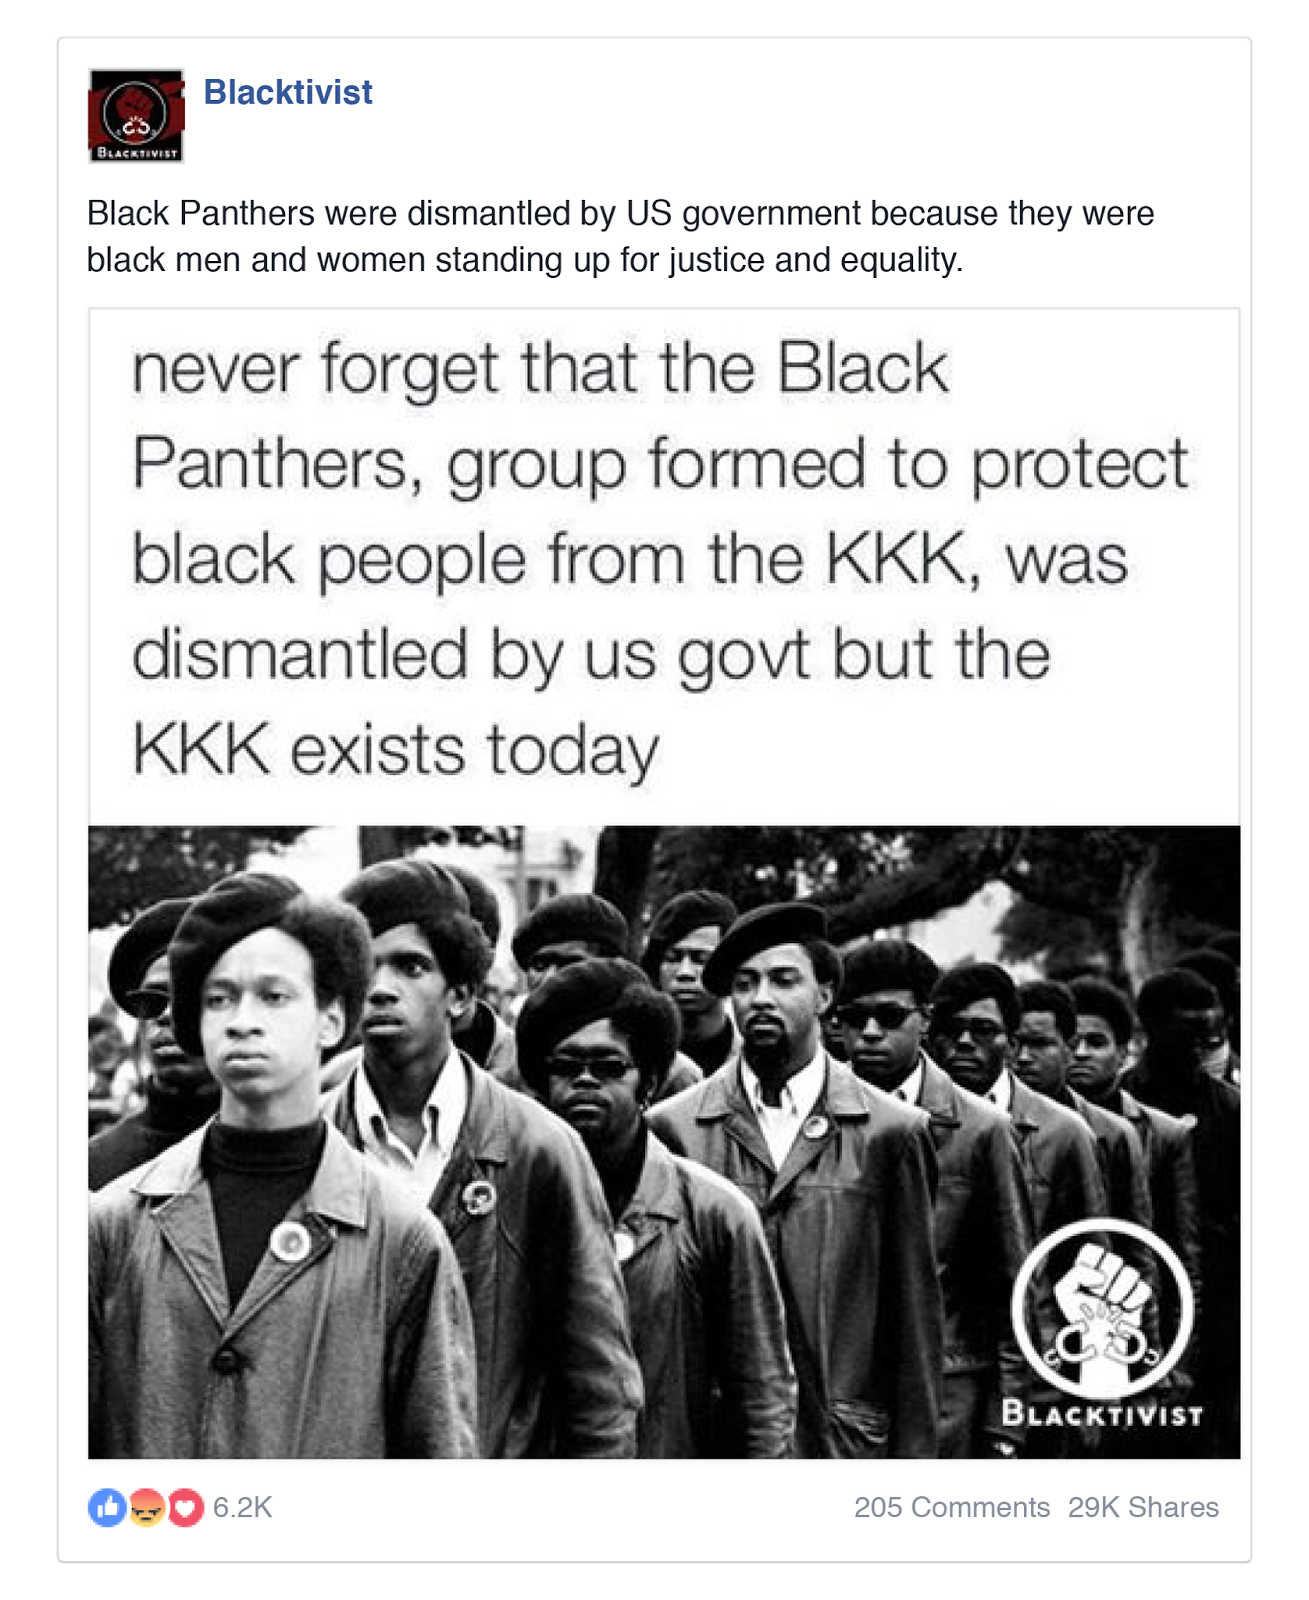 An endorsement of the Black Panthers as fighters against the KKK